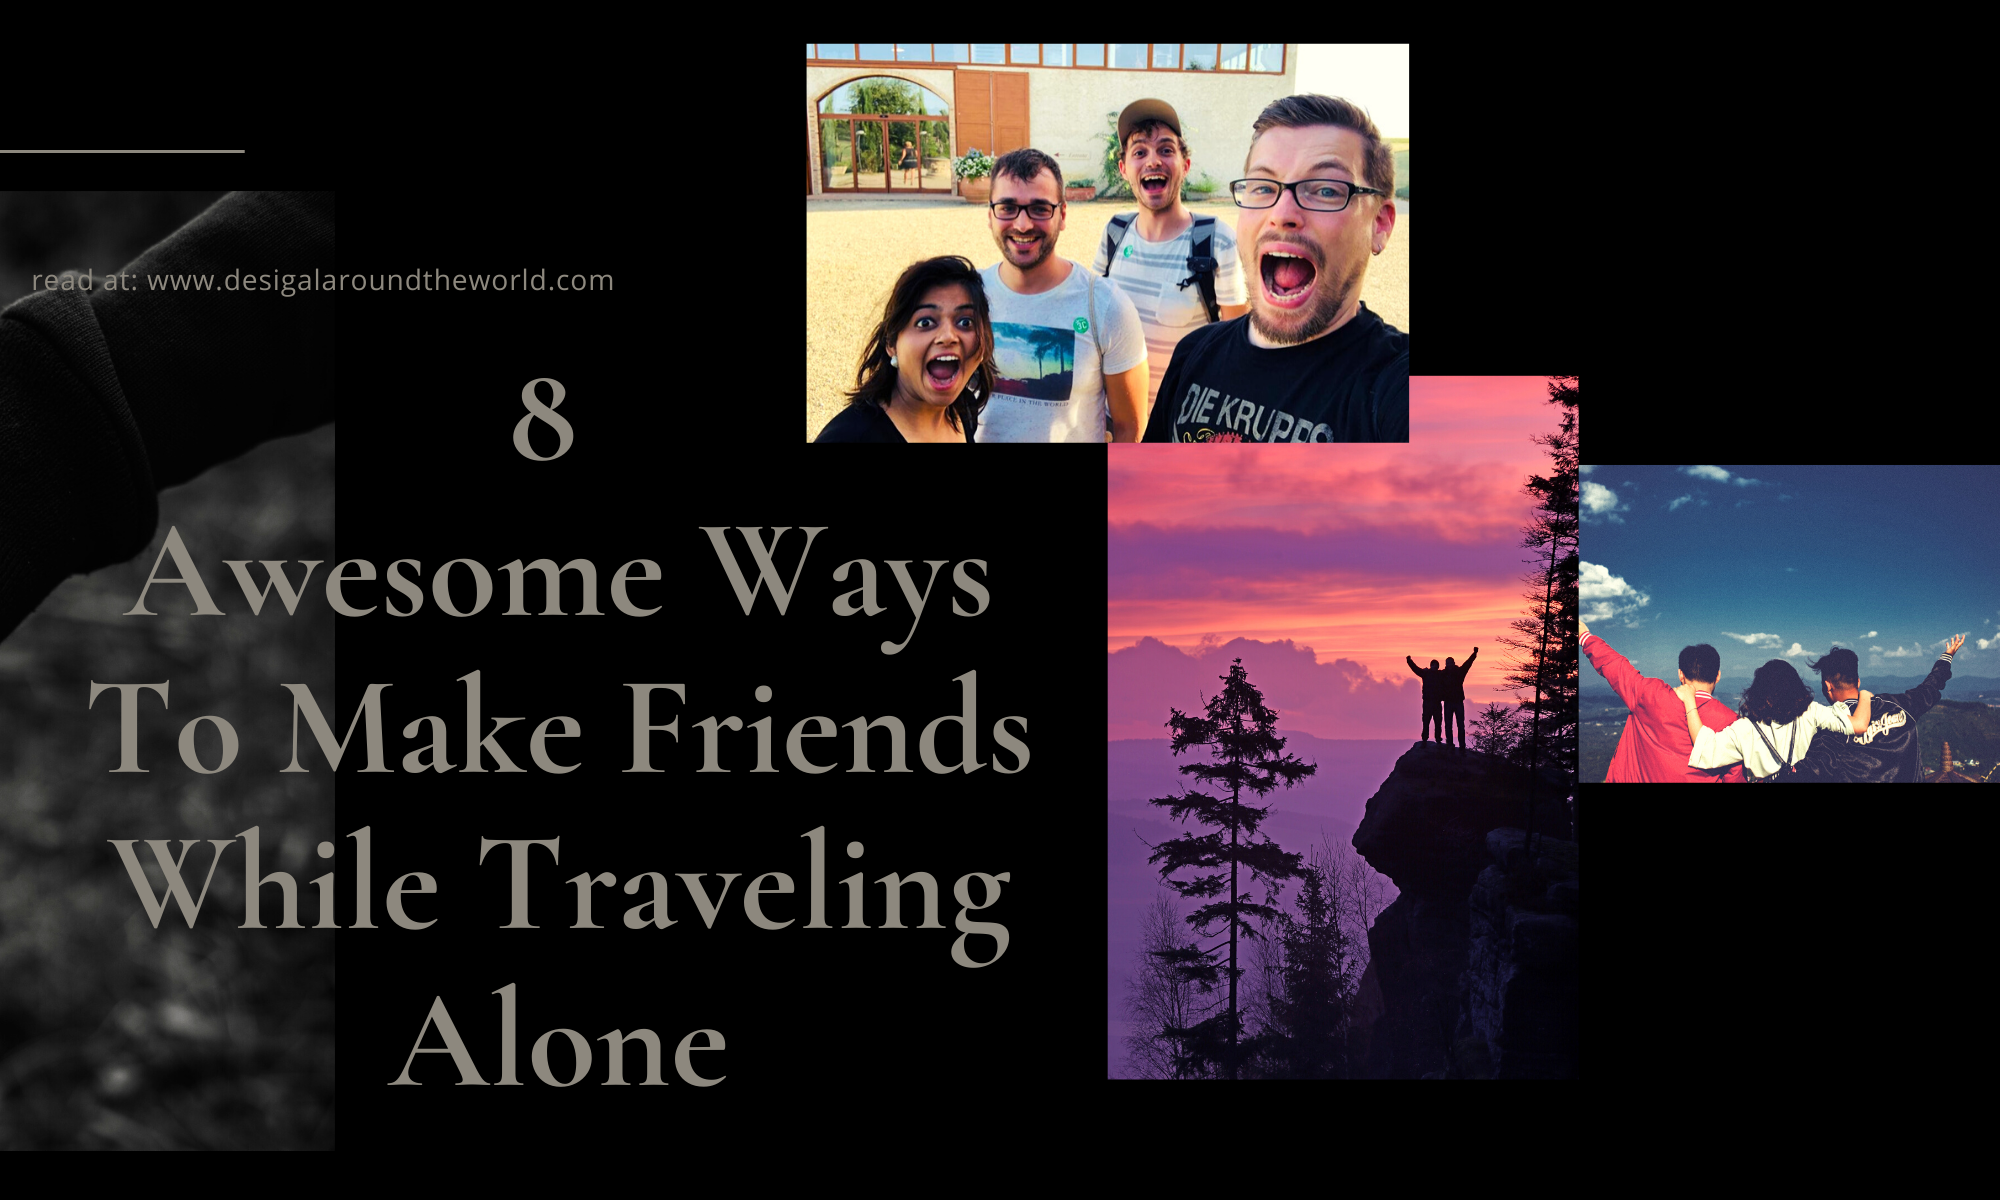 Awesome Ways To Make Friends While Traveling Alone